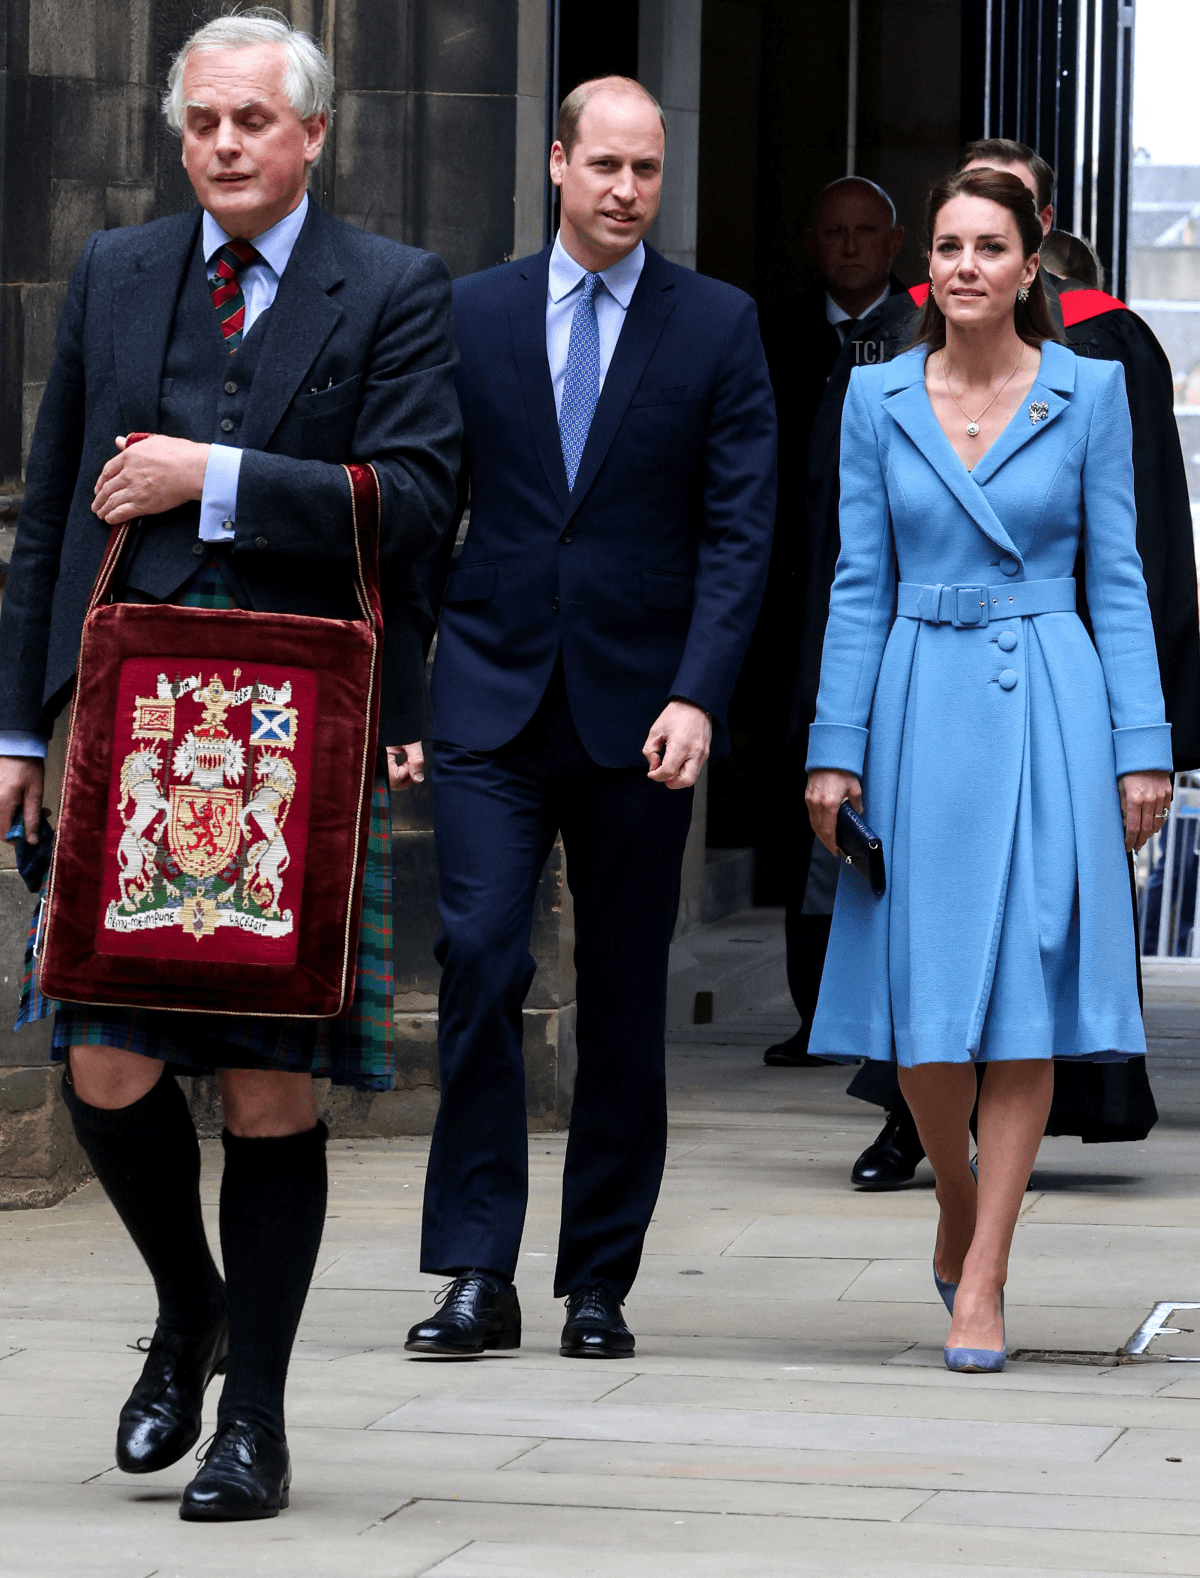 Britain's Prince William, Duke of Cambridge and Britain's Catherine, Duchess of Cambridge, arrive to attend the closing ceremony of the General Assembly of the Church of Scotland in Edinburgh on May 27, 2021, during their week long visit to Scotland